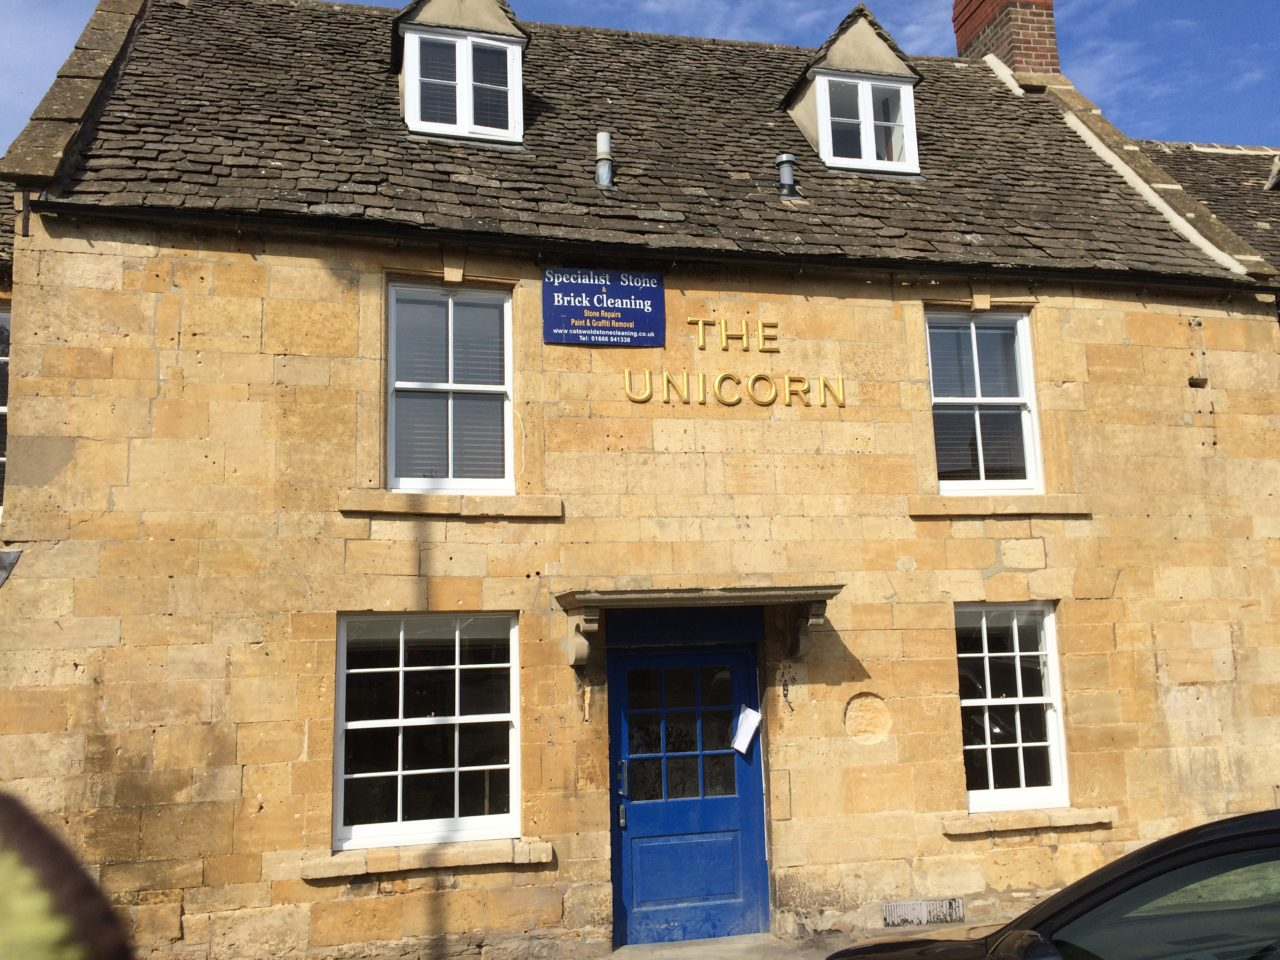 Cotswold Stone Cleaning – The Unicorn in Stow on the Wold After Cleaning